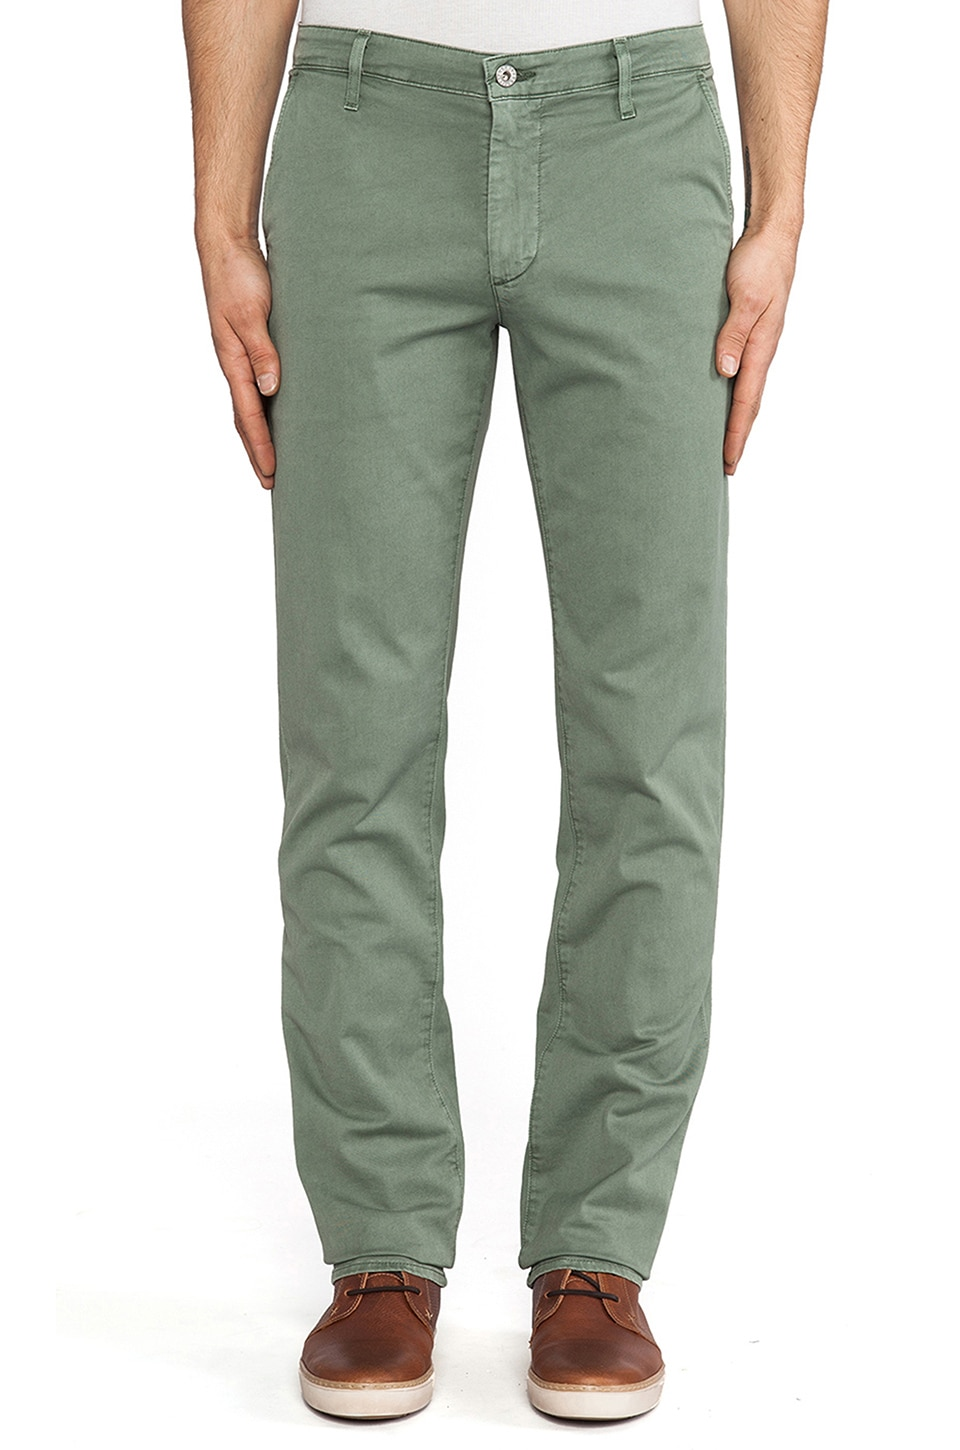 AG Adriano Goldschmied The Slim Khaki in Sulfur Basil